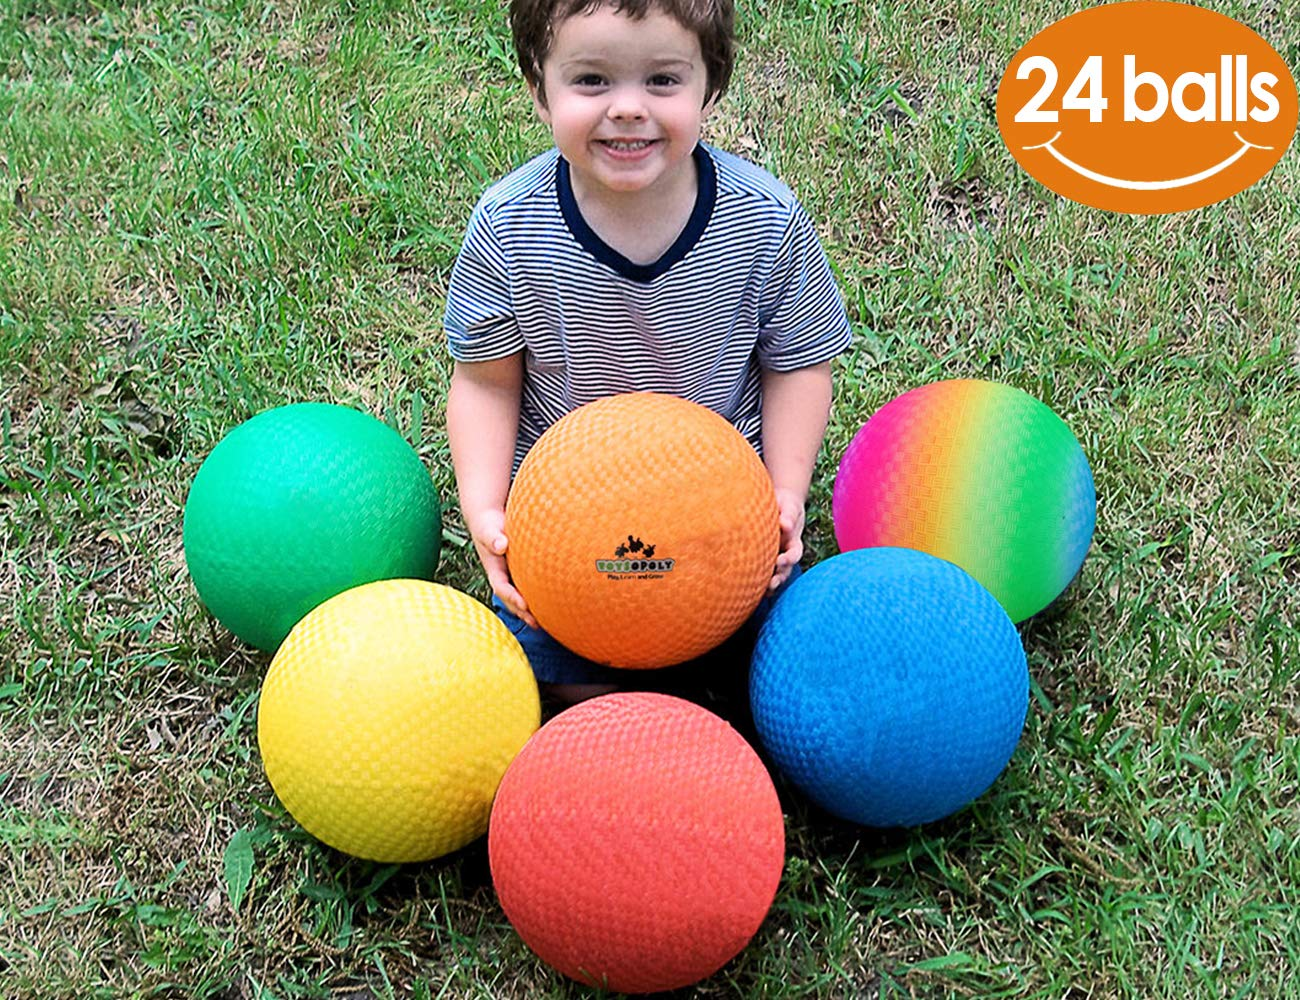 ToysOpoly Playground Balls 8.5 inch Dodgeball (Set of 24) Kickball for Kids and Adults - Official Size for Dodge Ball, Handball, Camps and Smart School + Free Pump & Mesh Bag by ToysOpoly